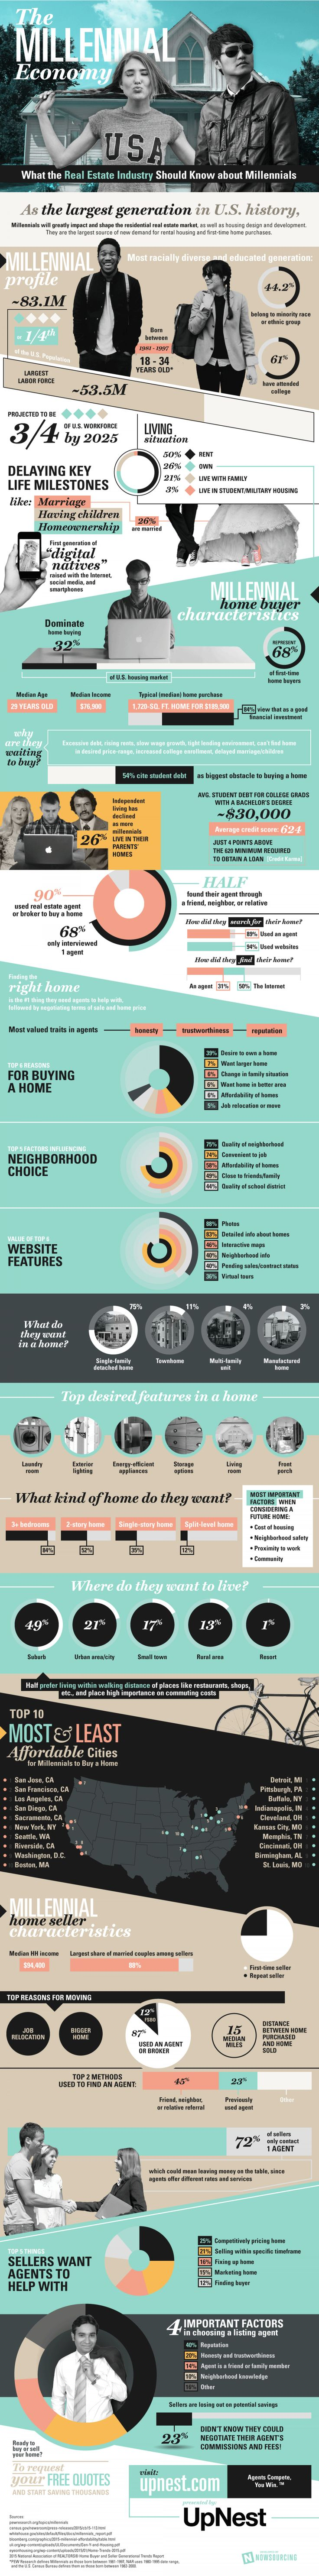 Real Estate Habits Of Millennials Infographic Source: http://visual.ly/real-estate-habits-millennials